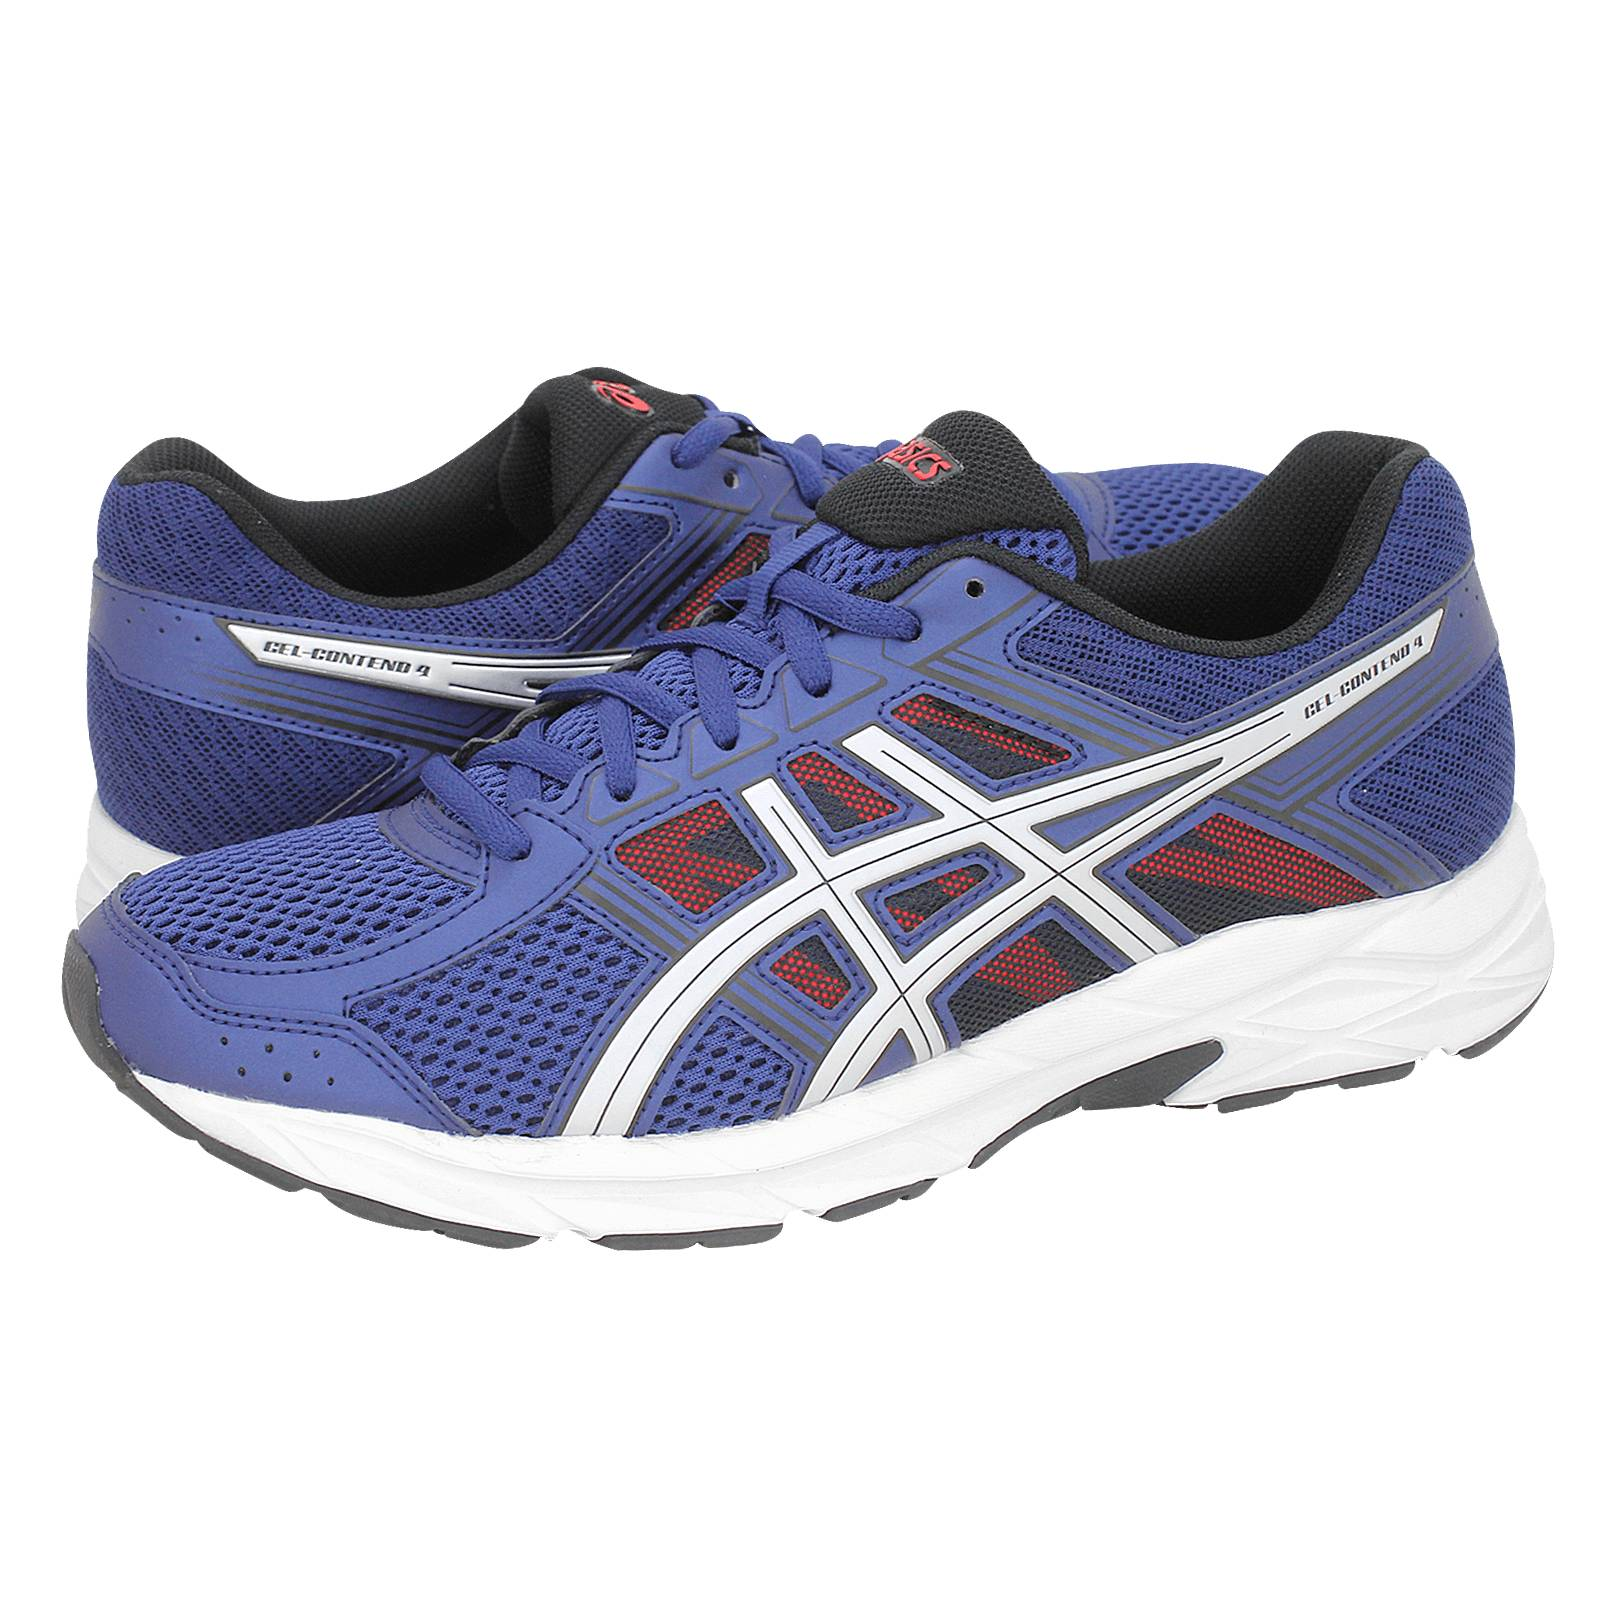 Gel-Contend 4 - Ανδρικά αθλητικά παπούτσια Asics από υφασμα και ... caff1bb19bf